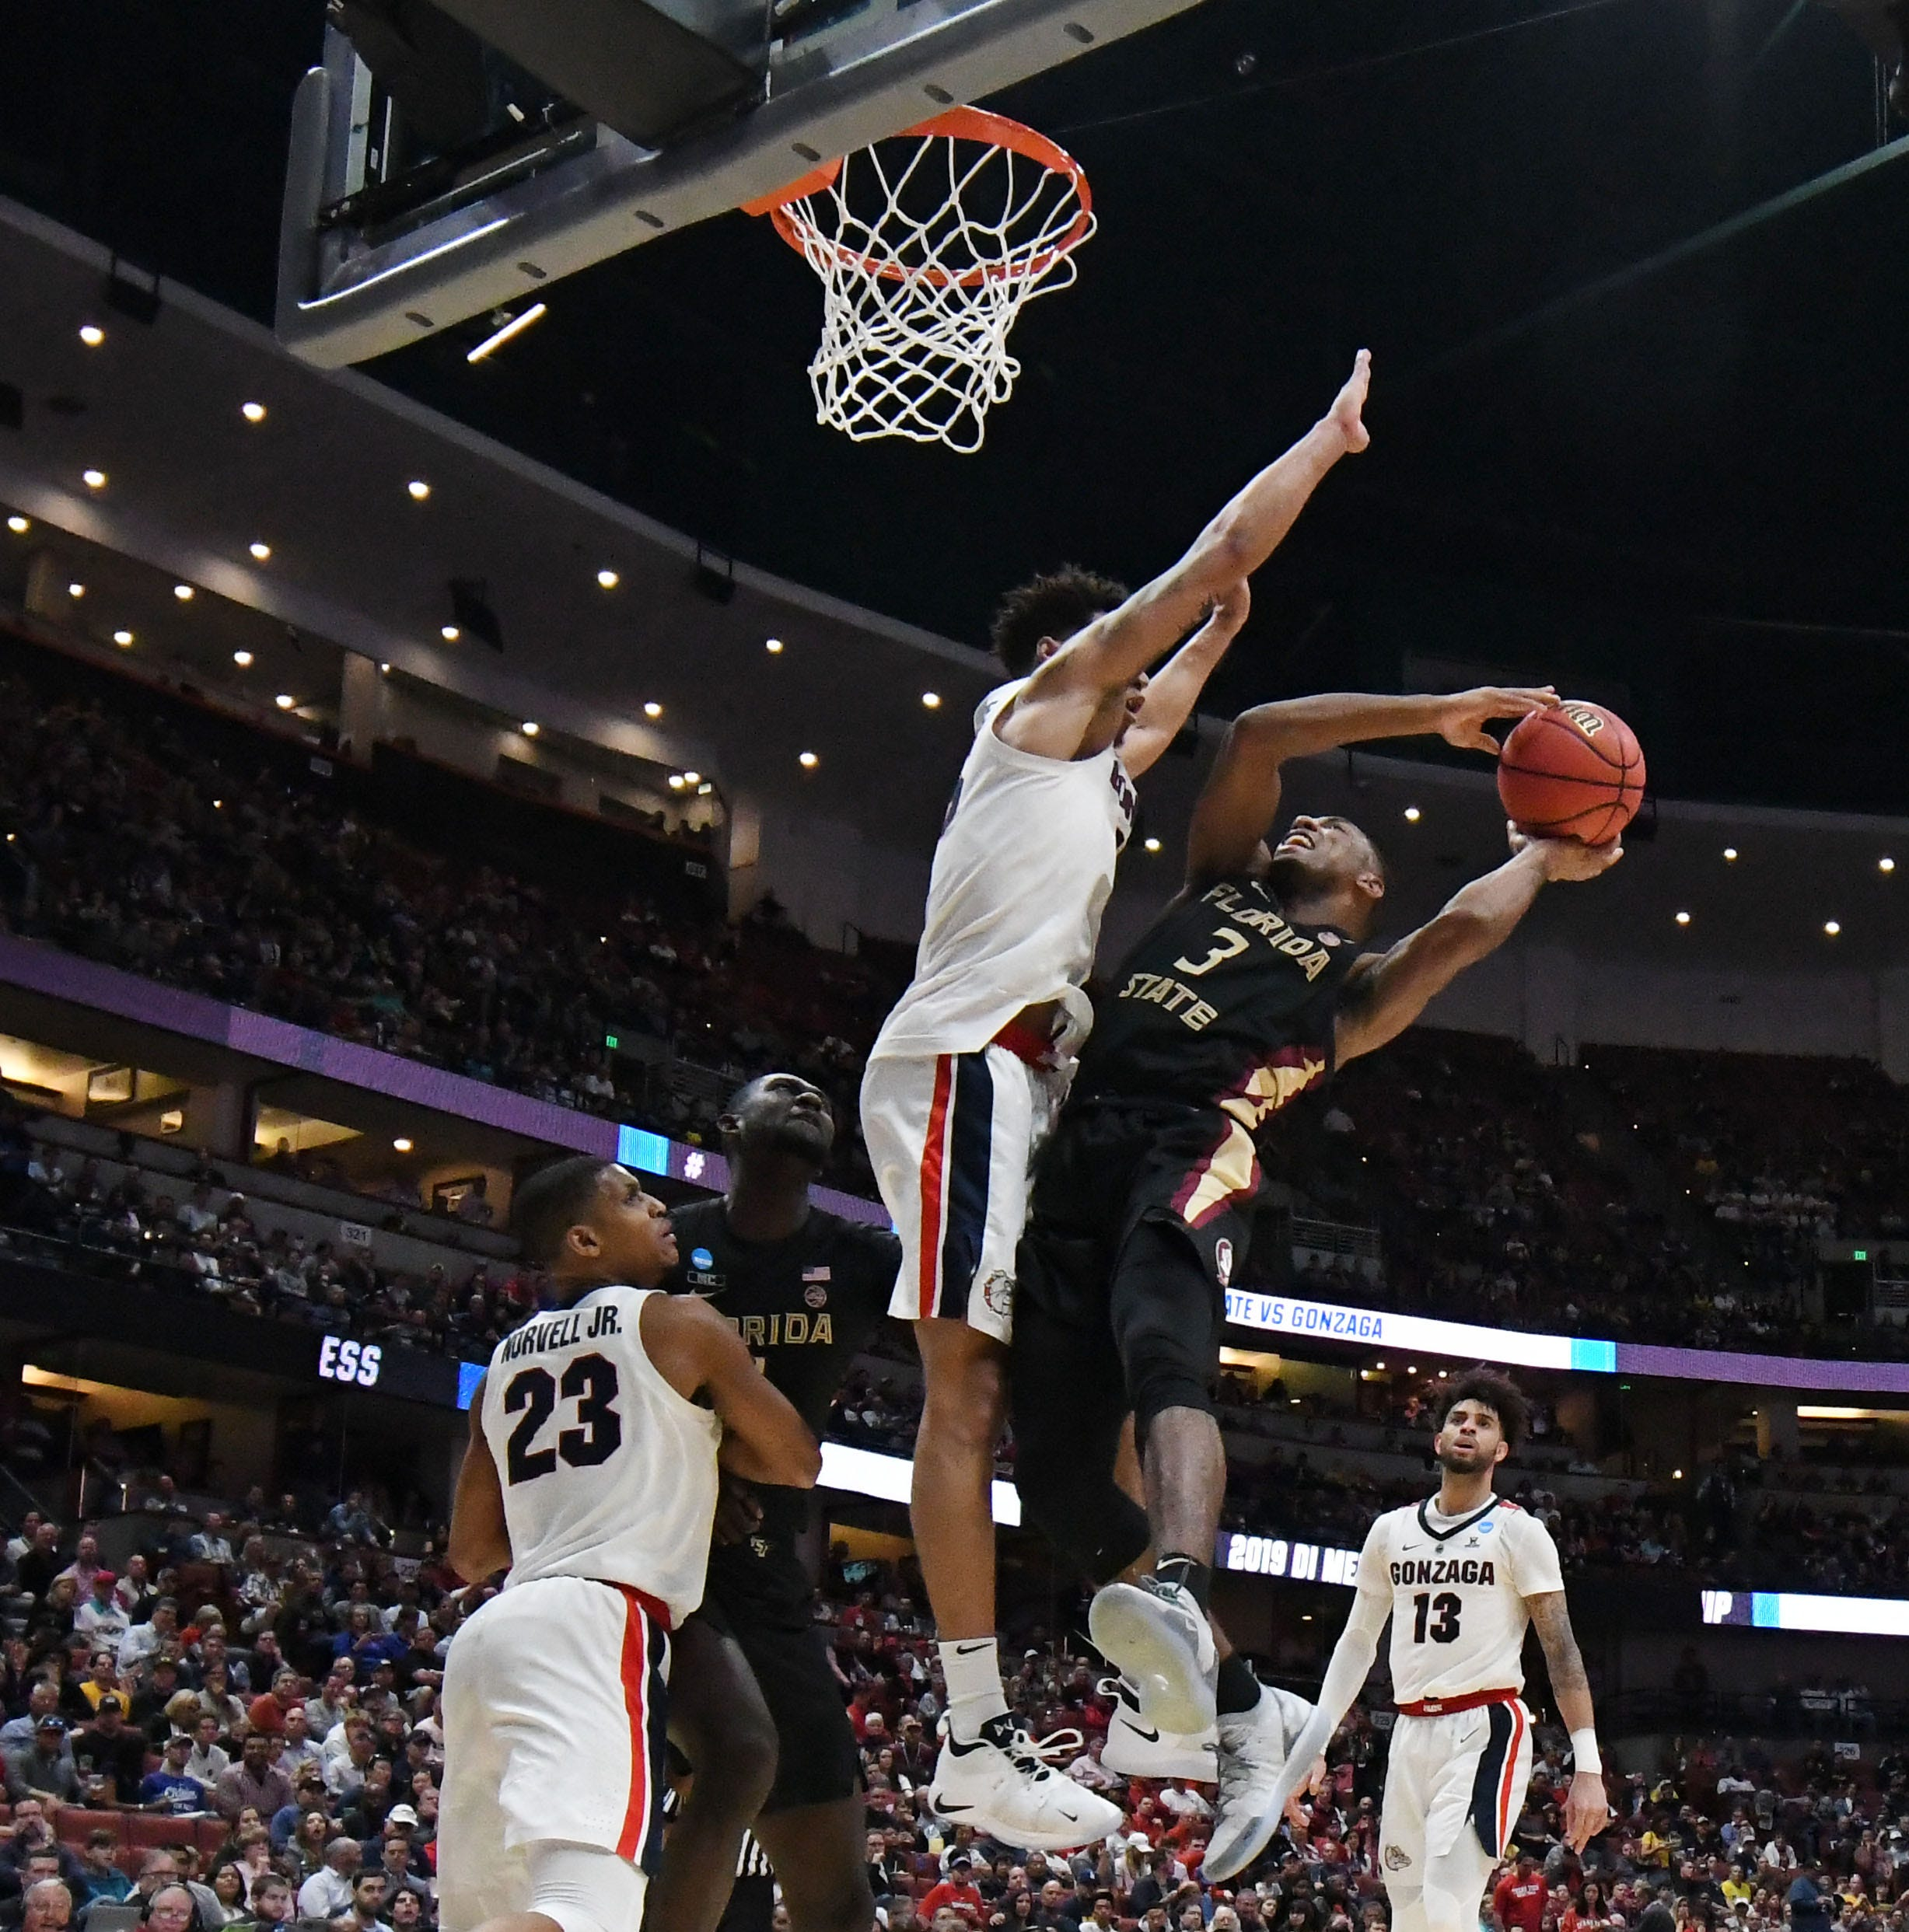 Florida State falls to No. 1 seed Gonzaga in Sweet 16